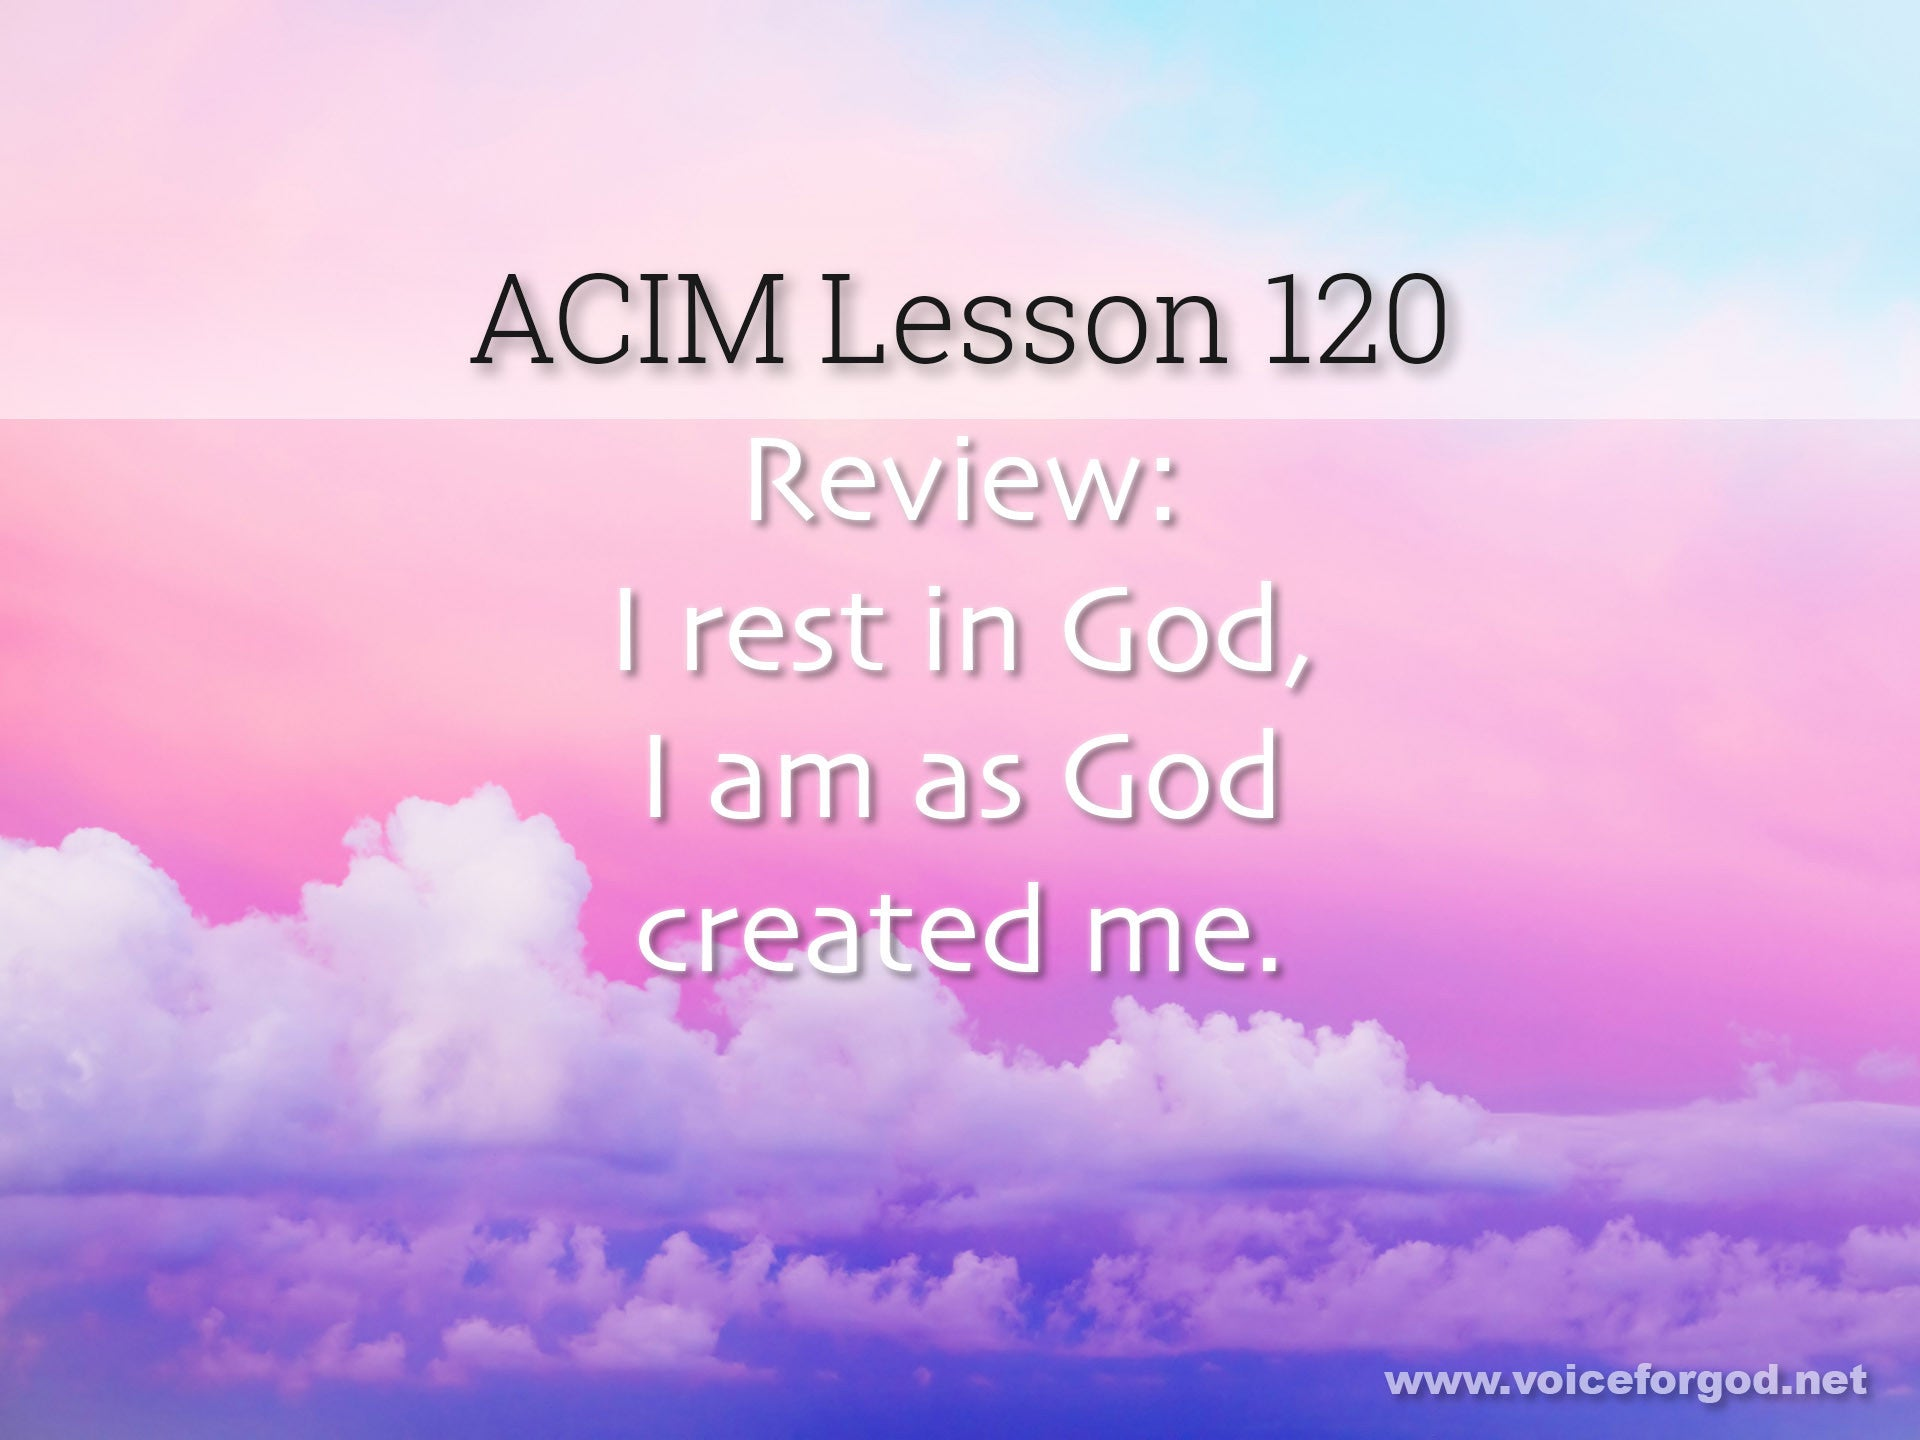 ACIM Lesson 120 - A Course in Miracles Workbook Lesson 120